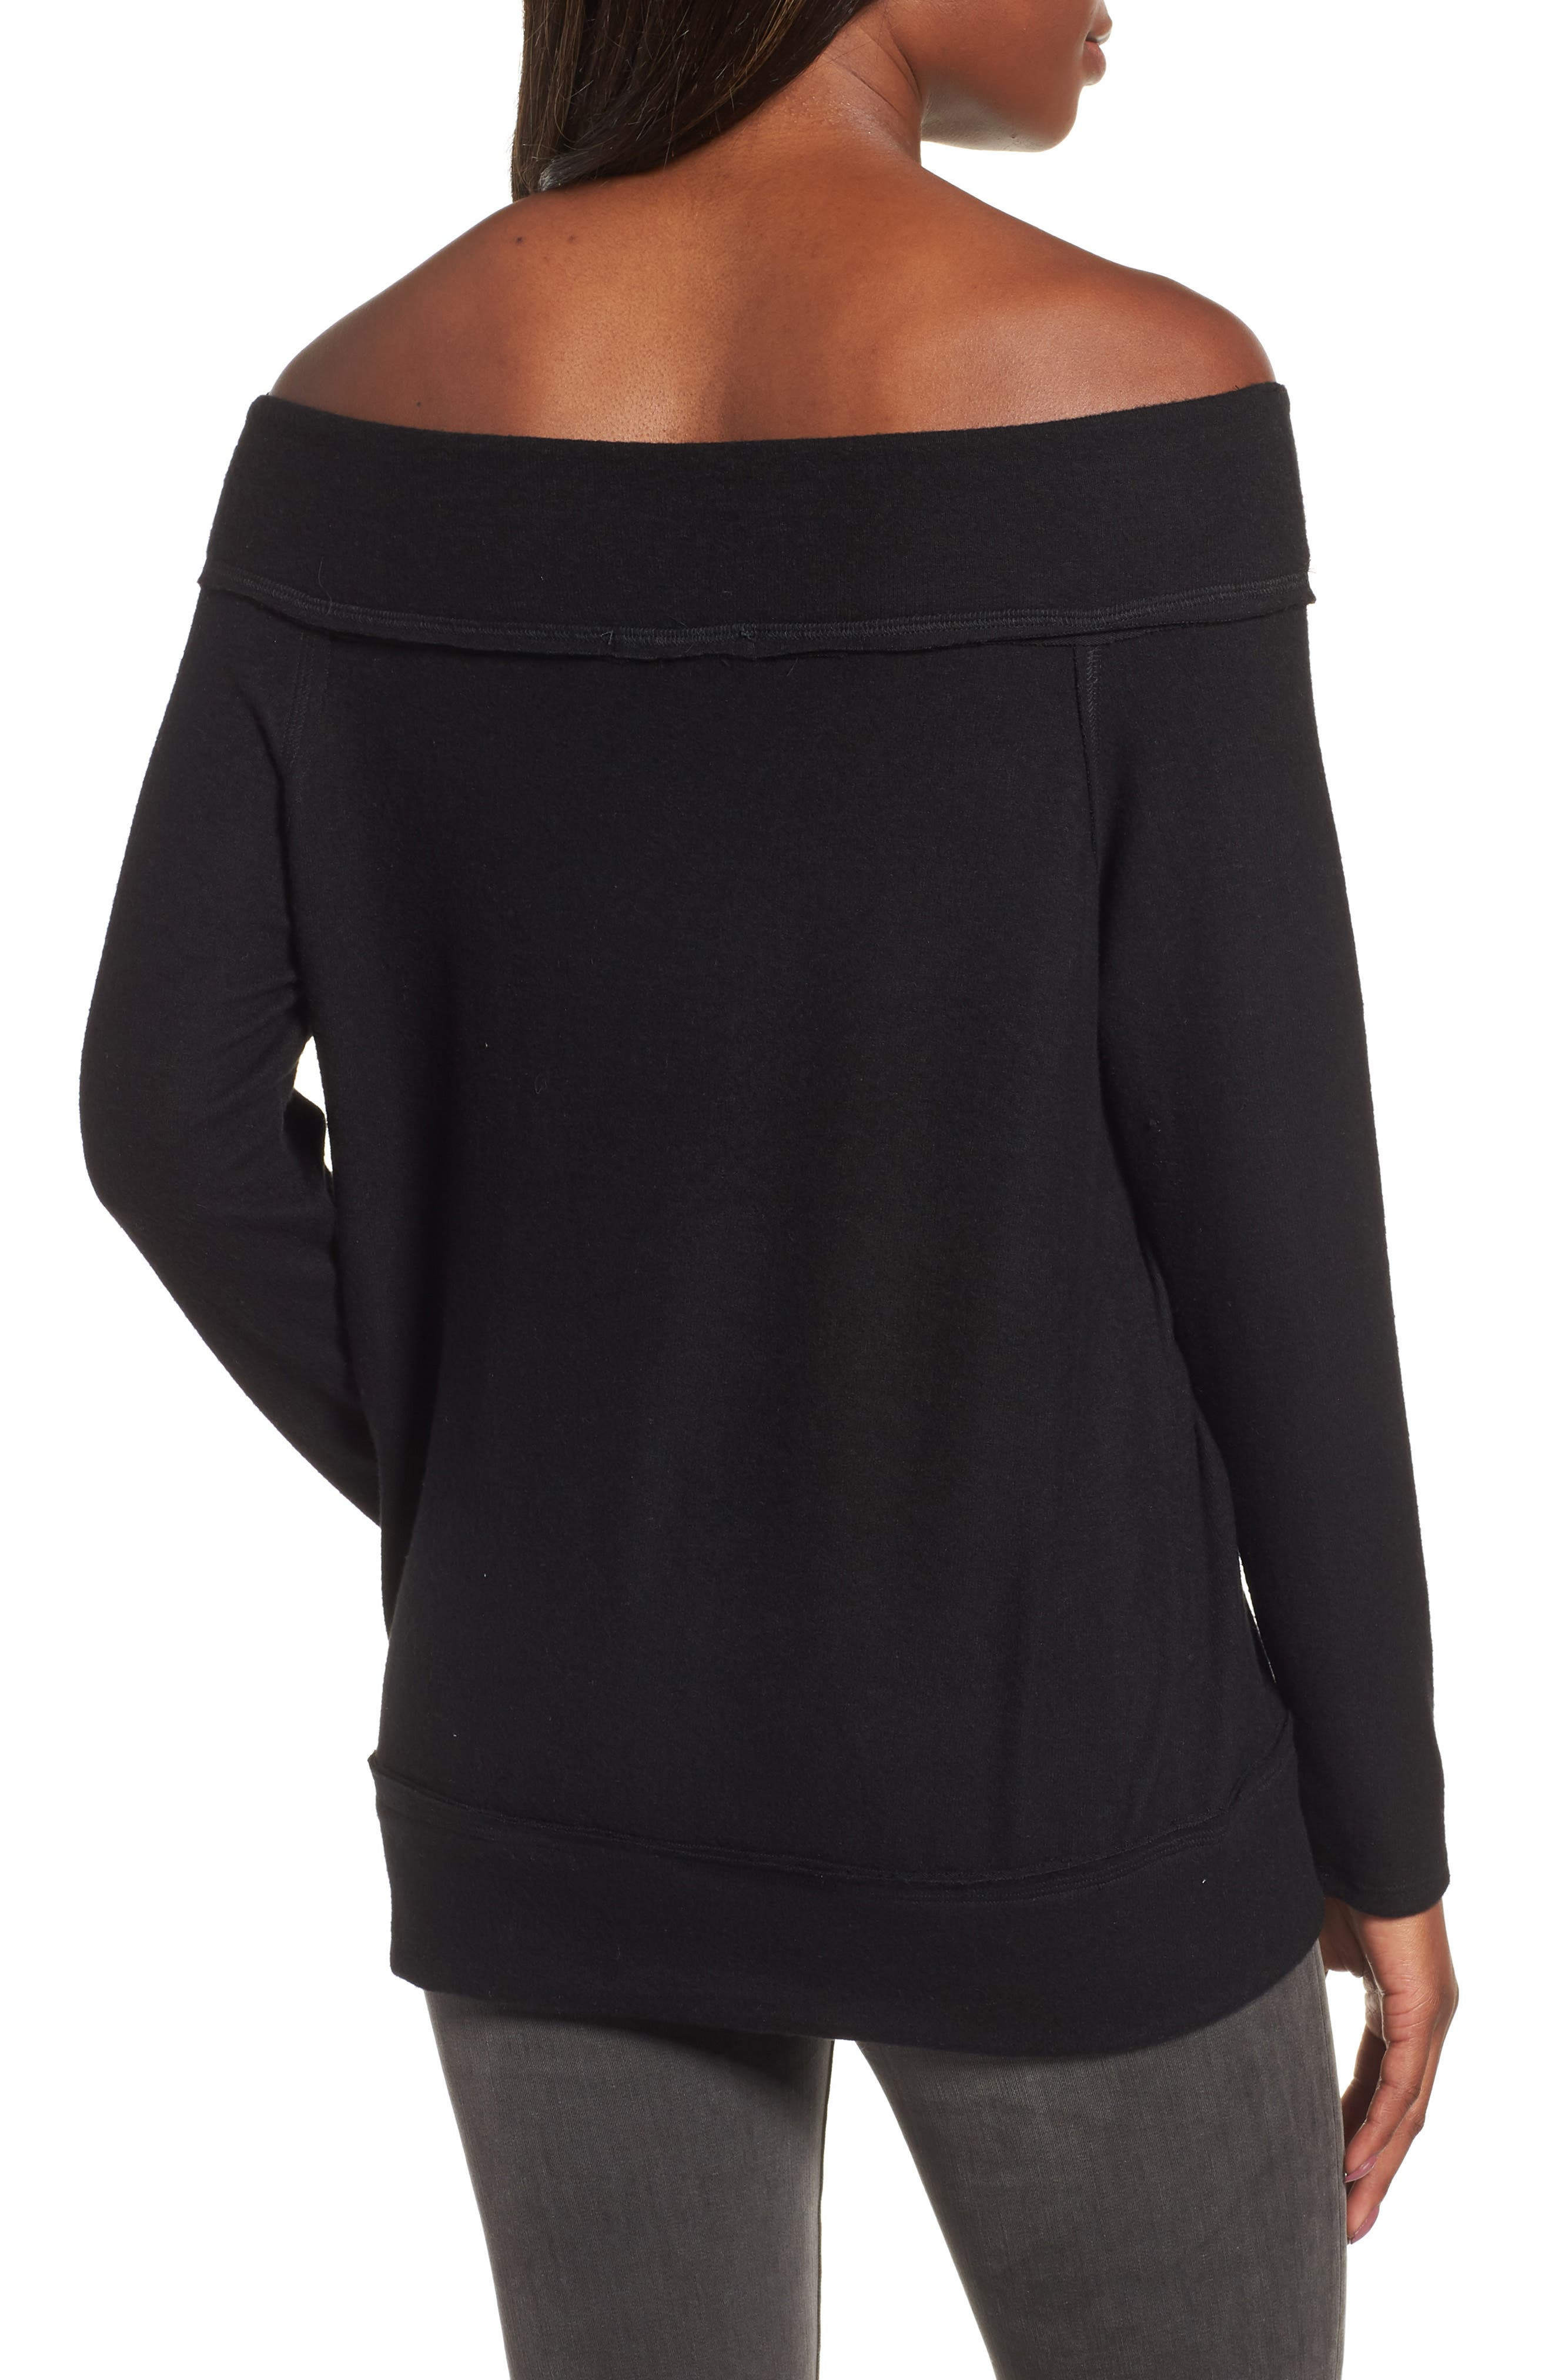 GIBSON, x Living in Yellow Mary Fleece Off the Shoulder Top, Alternate thumbnail 2, color, BLACK